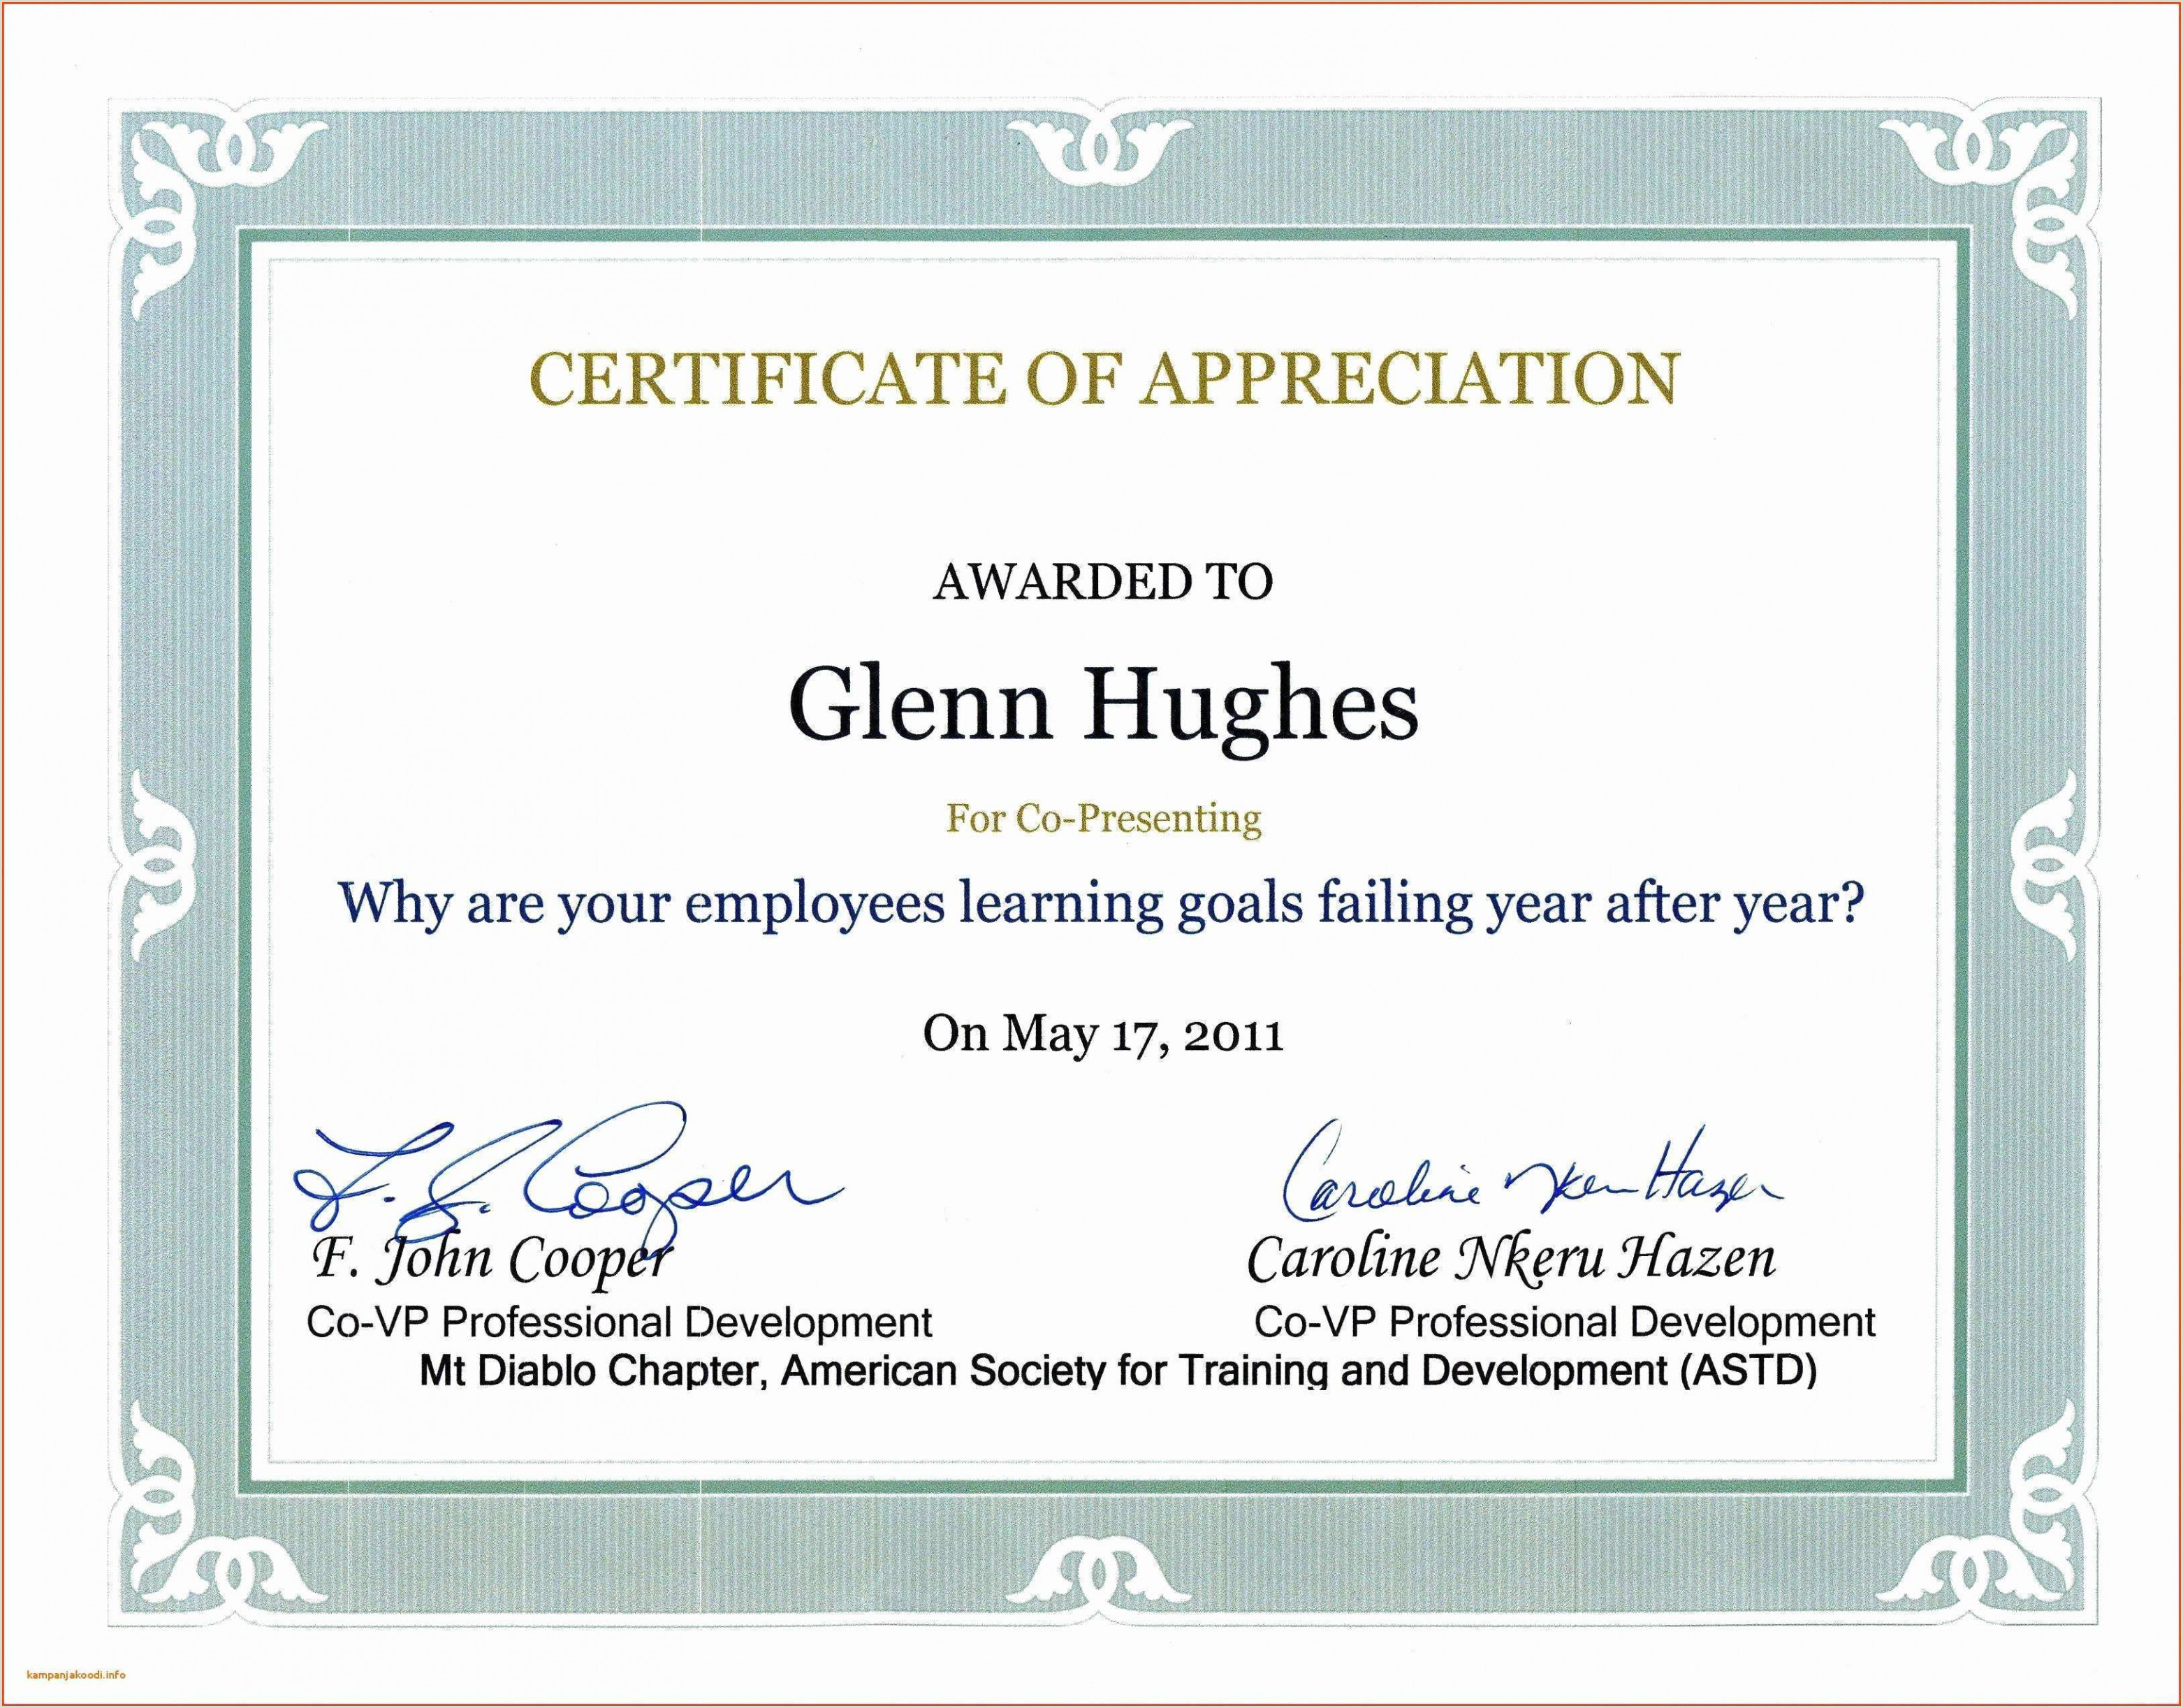 Letter Of Appreciation Usmc Certificate Achievement Wording Climatejourney